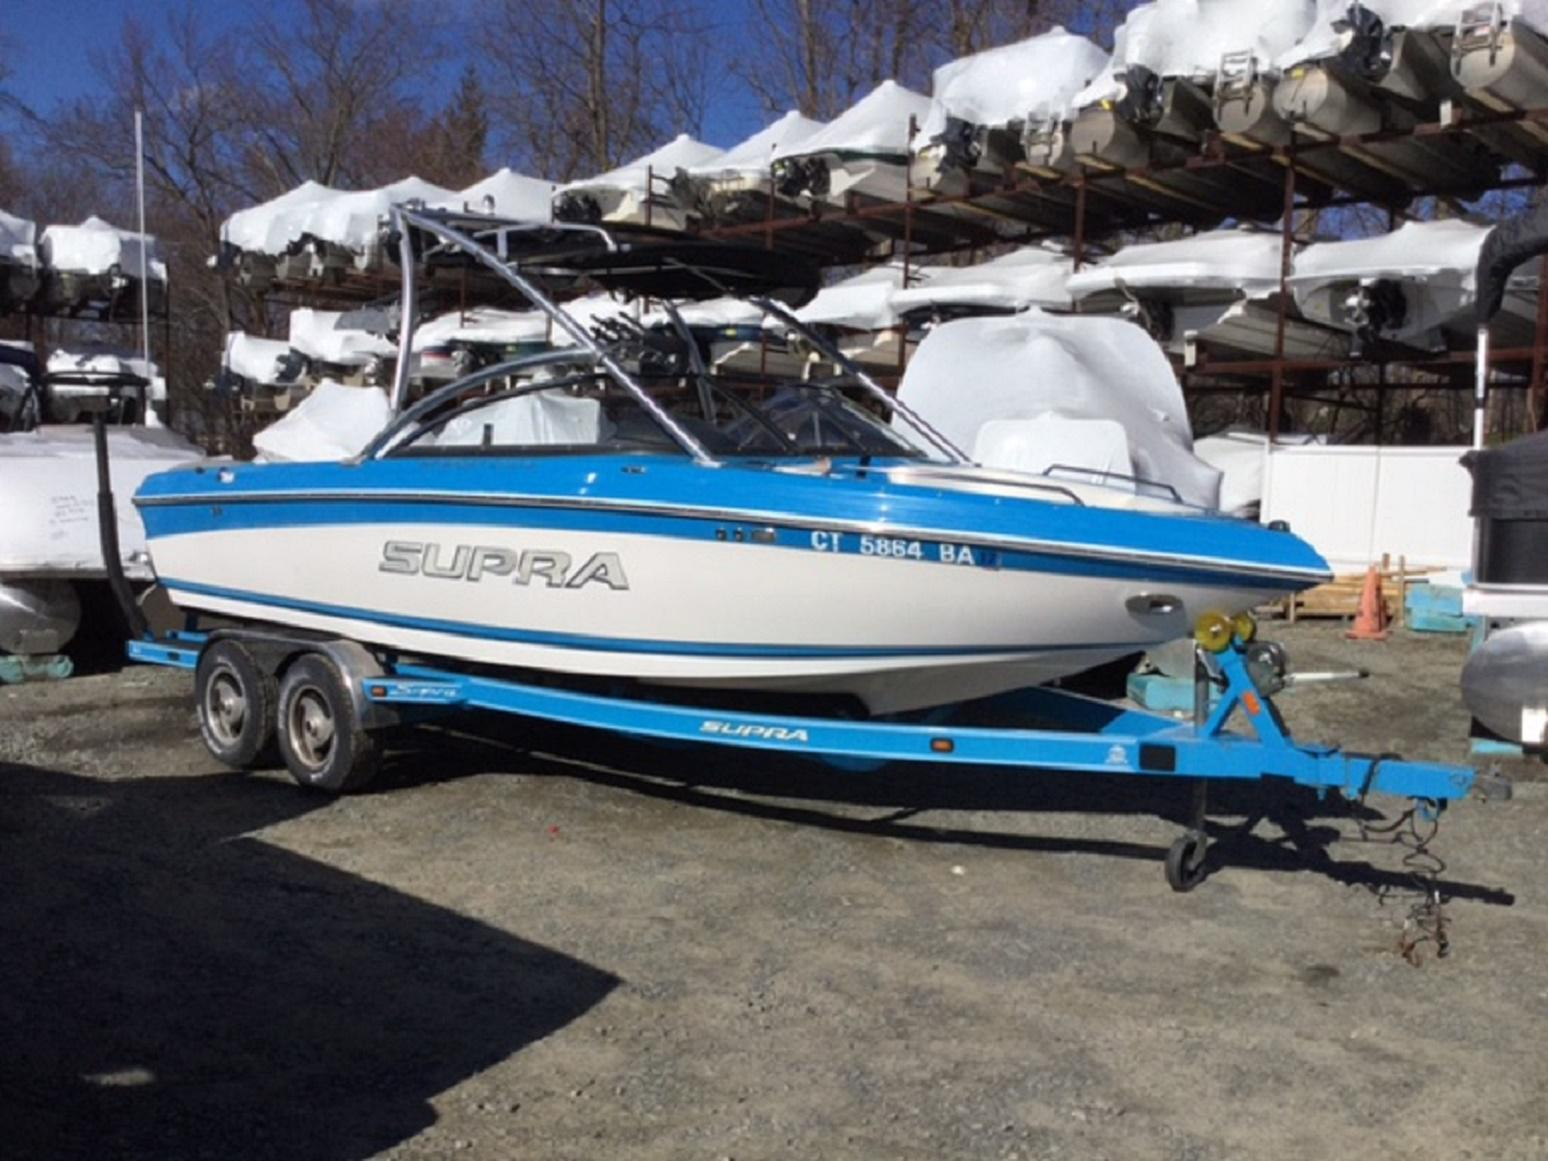 Boats for sale in 06763 - Boat Trader